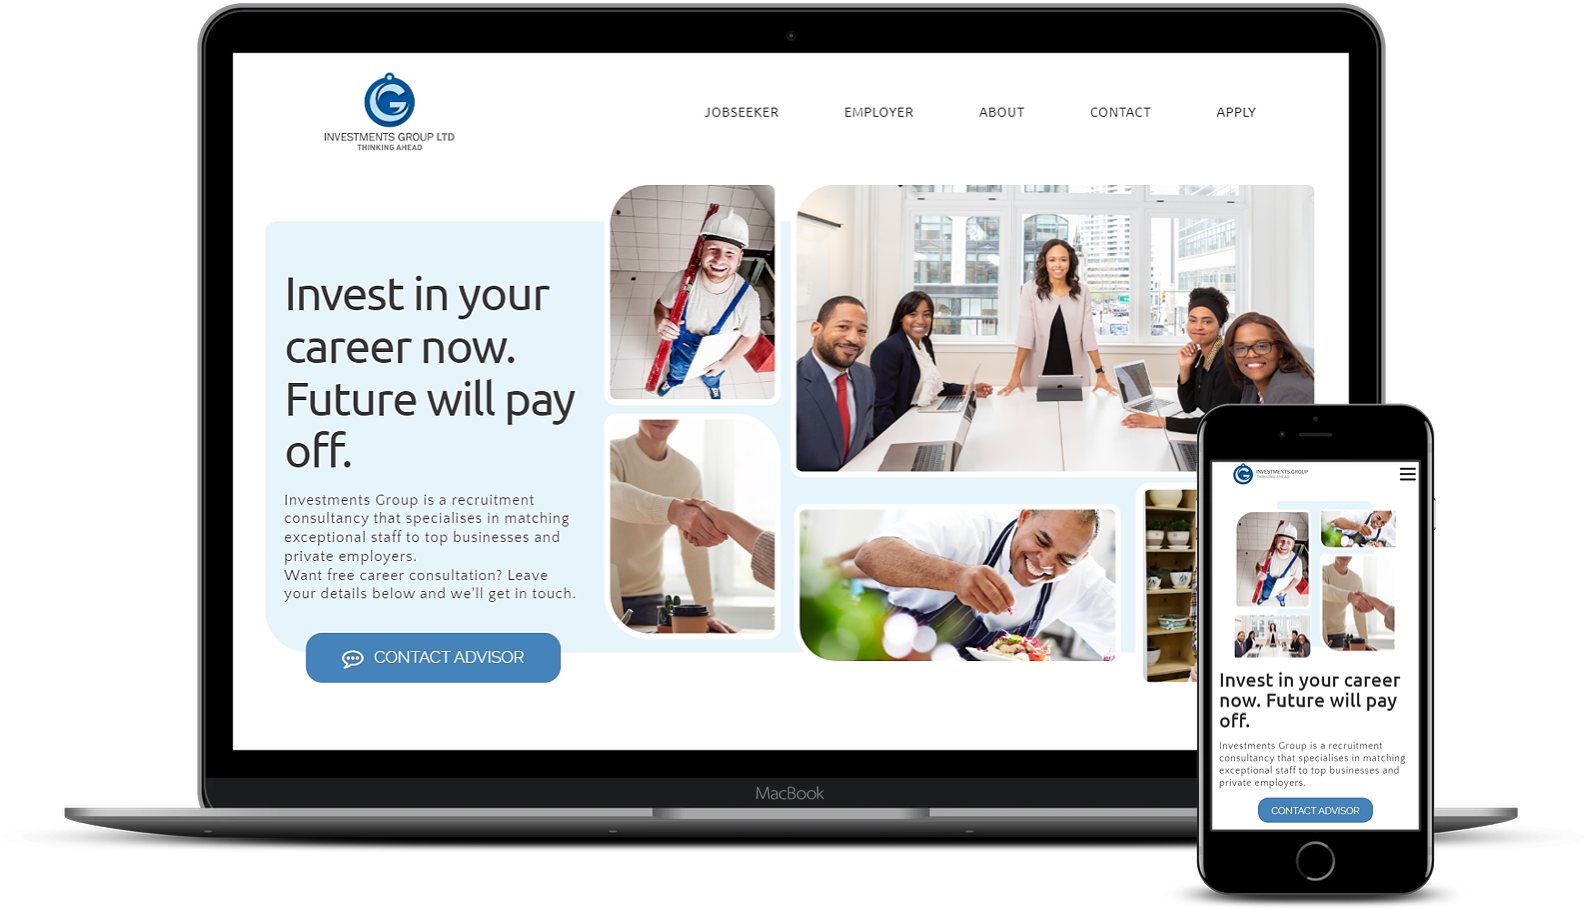 Investments Group website design by NetSwifter - mockup MacBook & iPhone